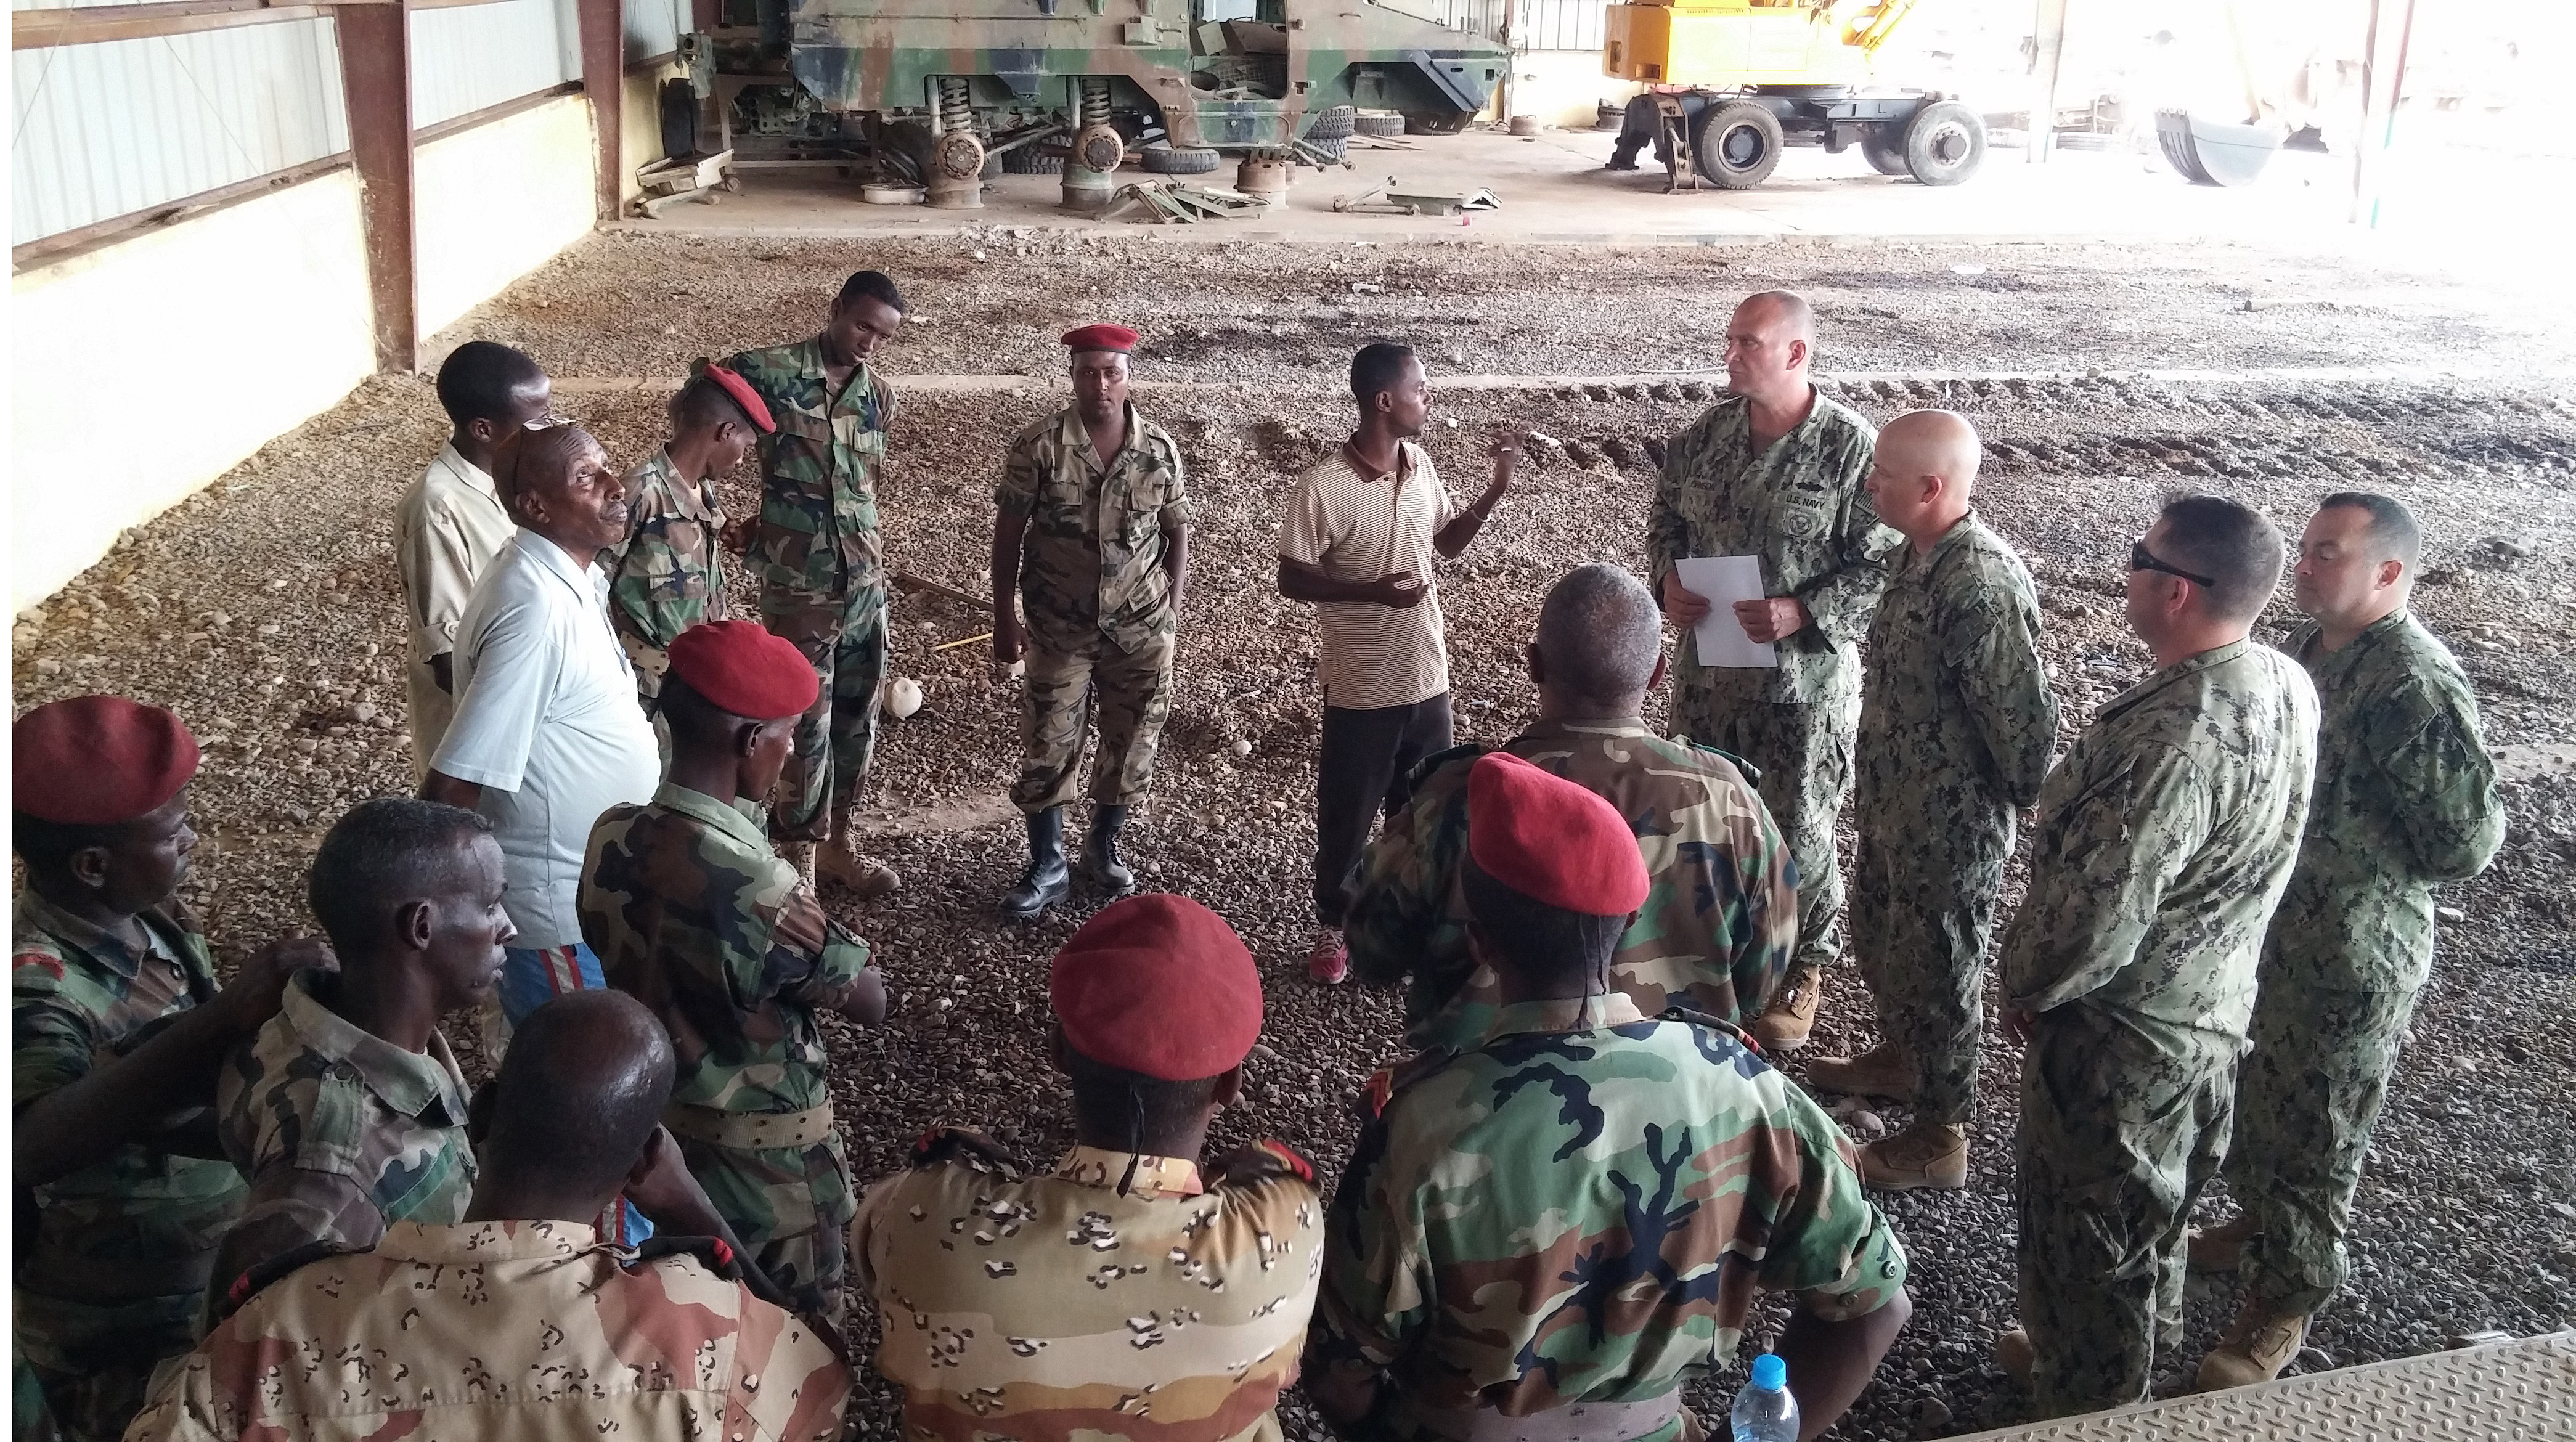 Camp Cheik Osman, Djibouti  (Mar. 18, 2015) U.S. Navy Seabees of Naval Mobile Construction Battalion (NMCB) 14, along with members of the Djiboutian Army's Construction Engineers, discuss safety topics before beginning hands-on equipment operation training. Naval Mobile Construction Battalion -14 Detachment HOA is assigned to Camp Lemonnier in support of Combined Joint Task Force–Horn of Africa. (U.S. Navy photo by Lieutenant Junior Grade Stephen Woodham)